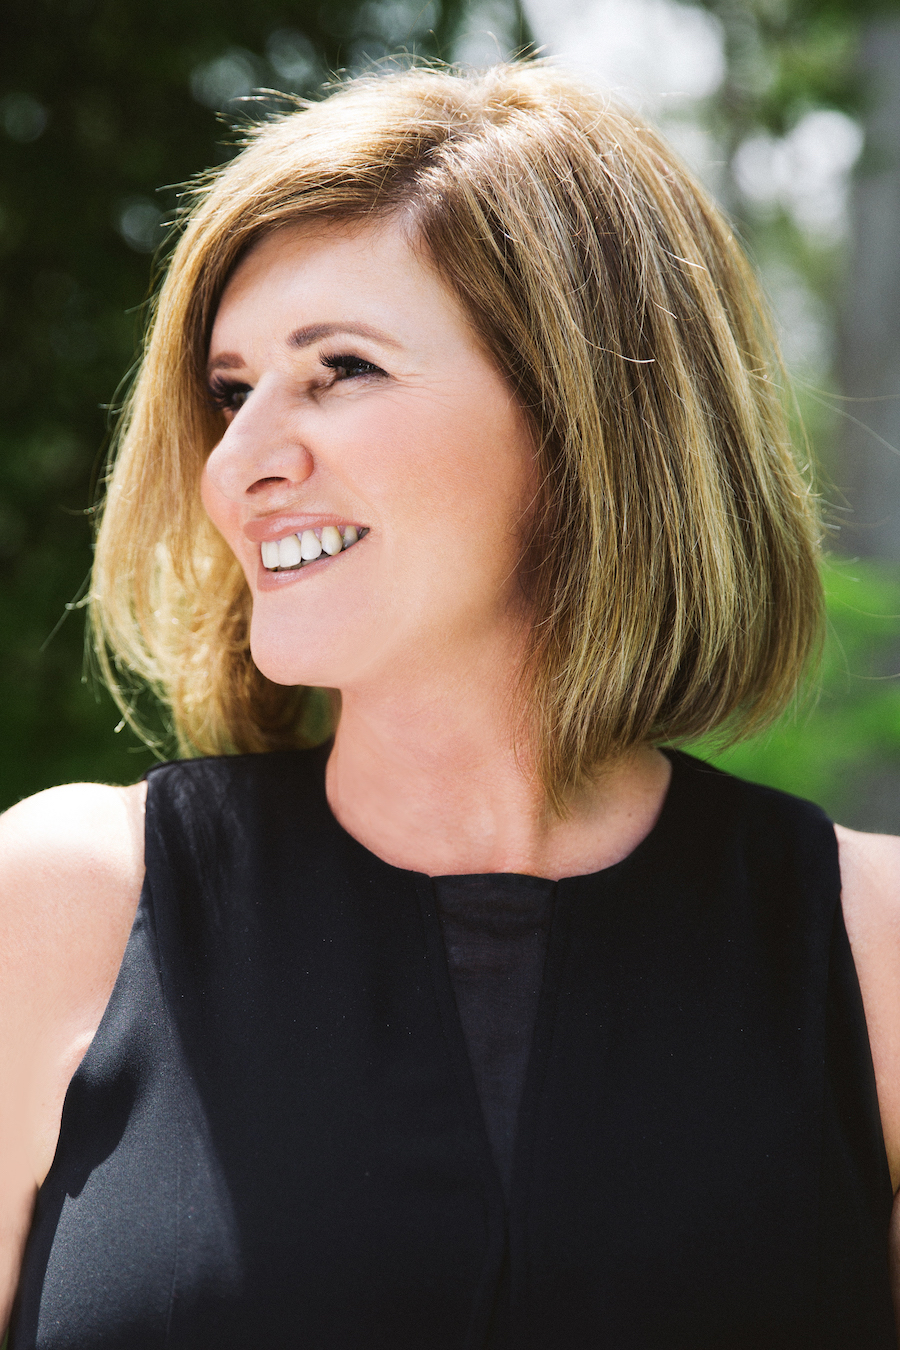 Michelle Doherty CEO and Founder Alpha-H Skincare women in business